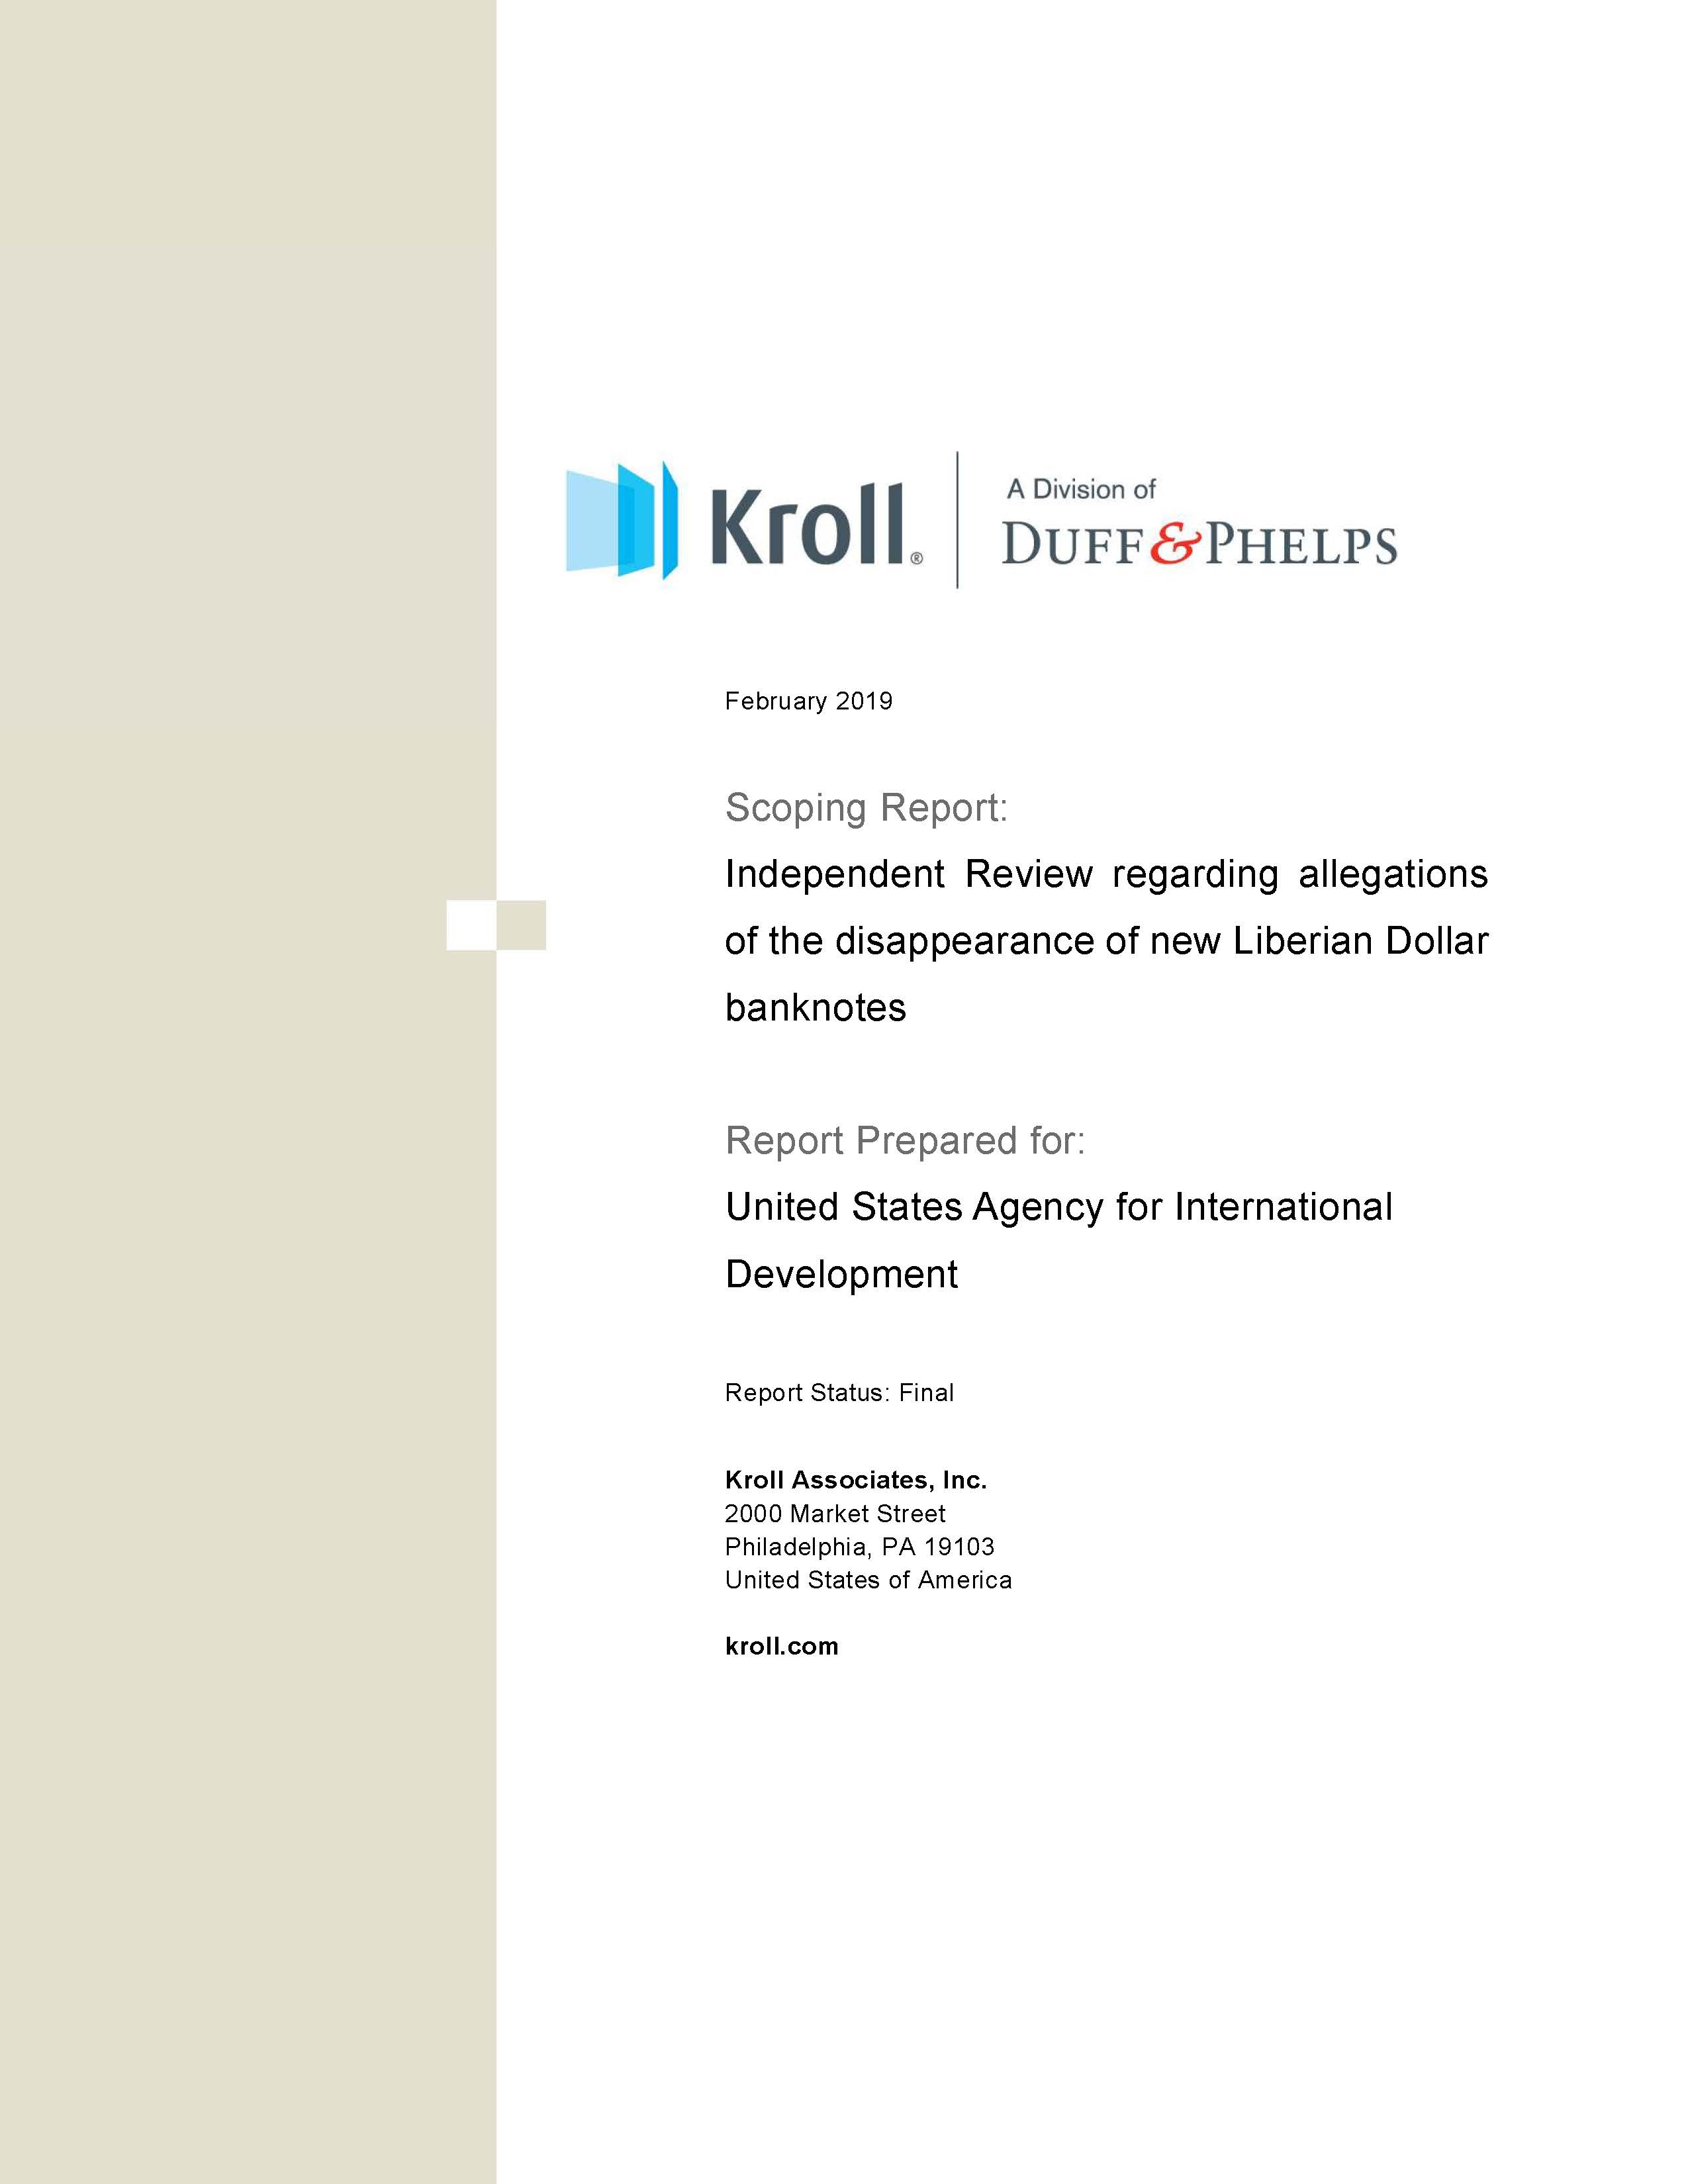 Independent Review Report prepared by Kroll Associates Inc.